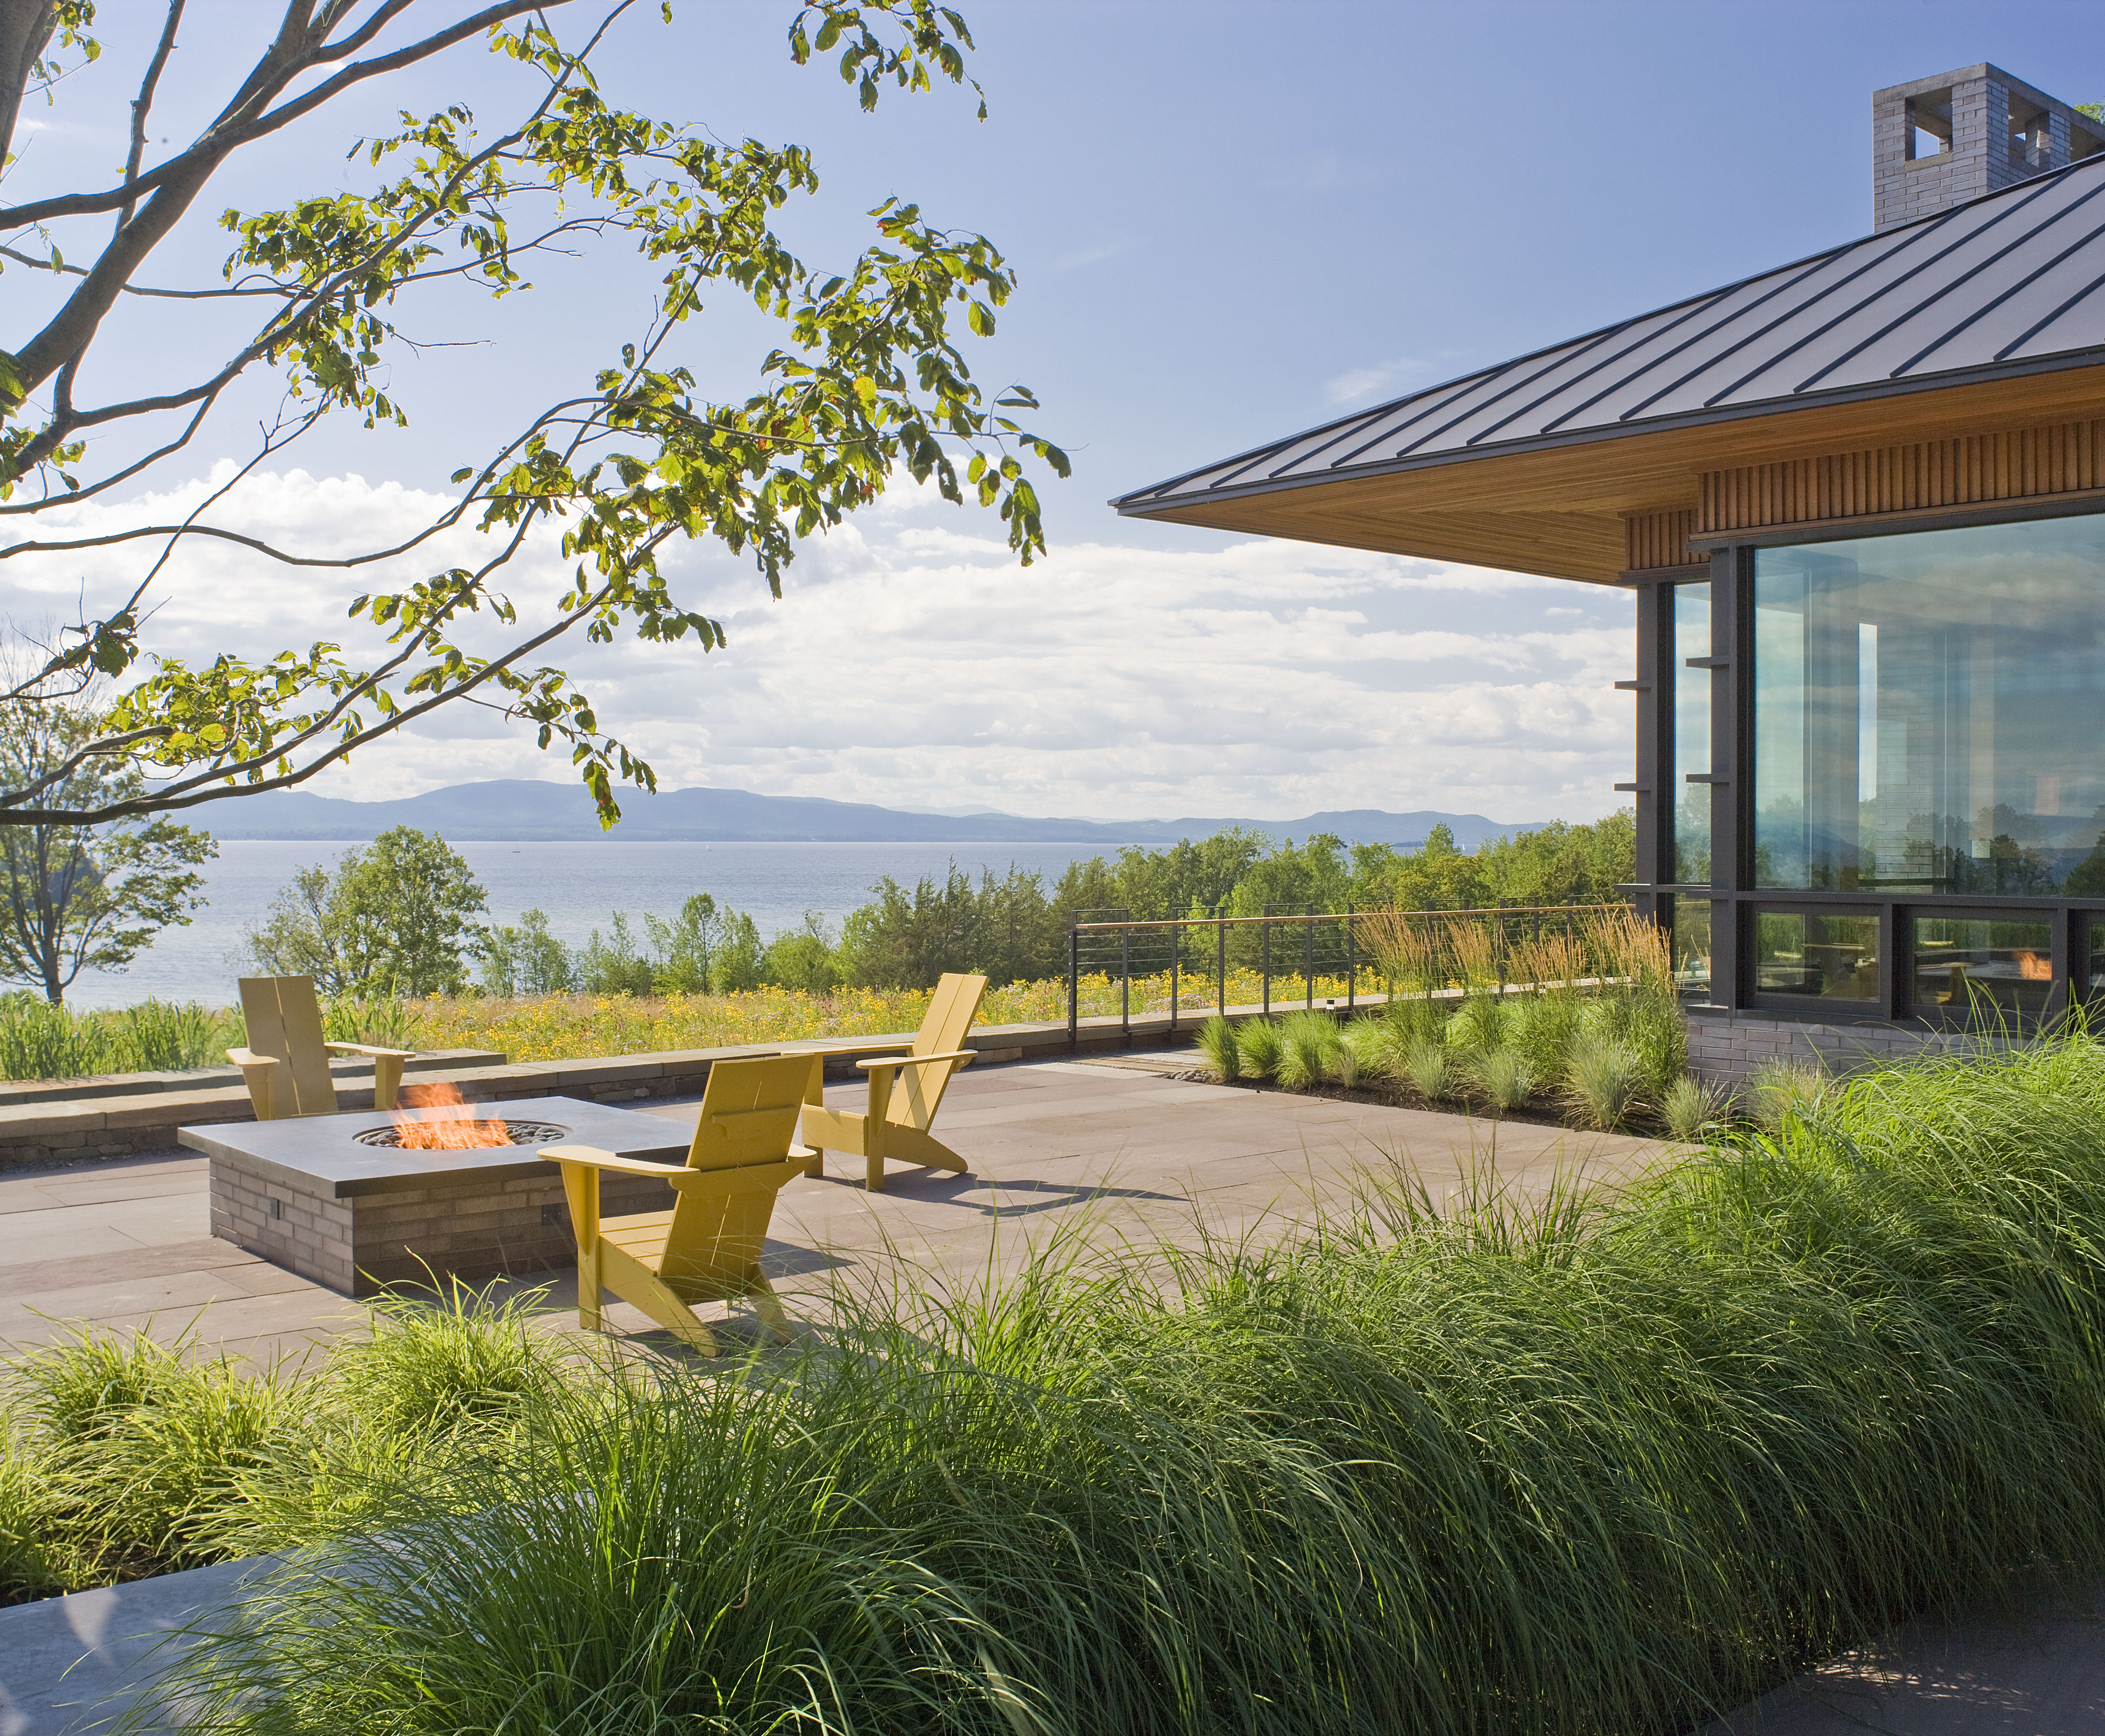 Asla 2012 professional awards quaker smith point residence for Top landscape architects